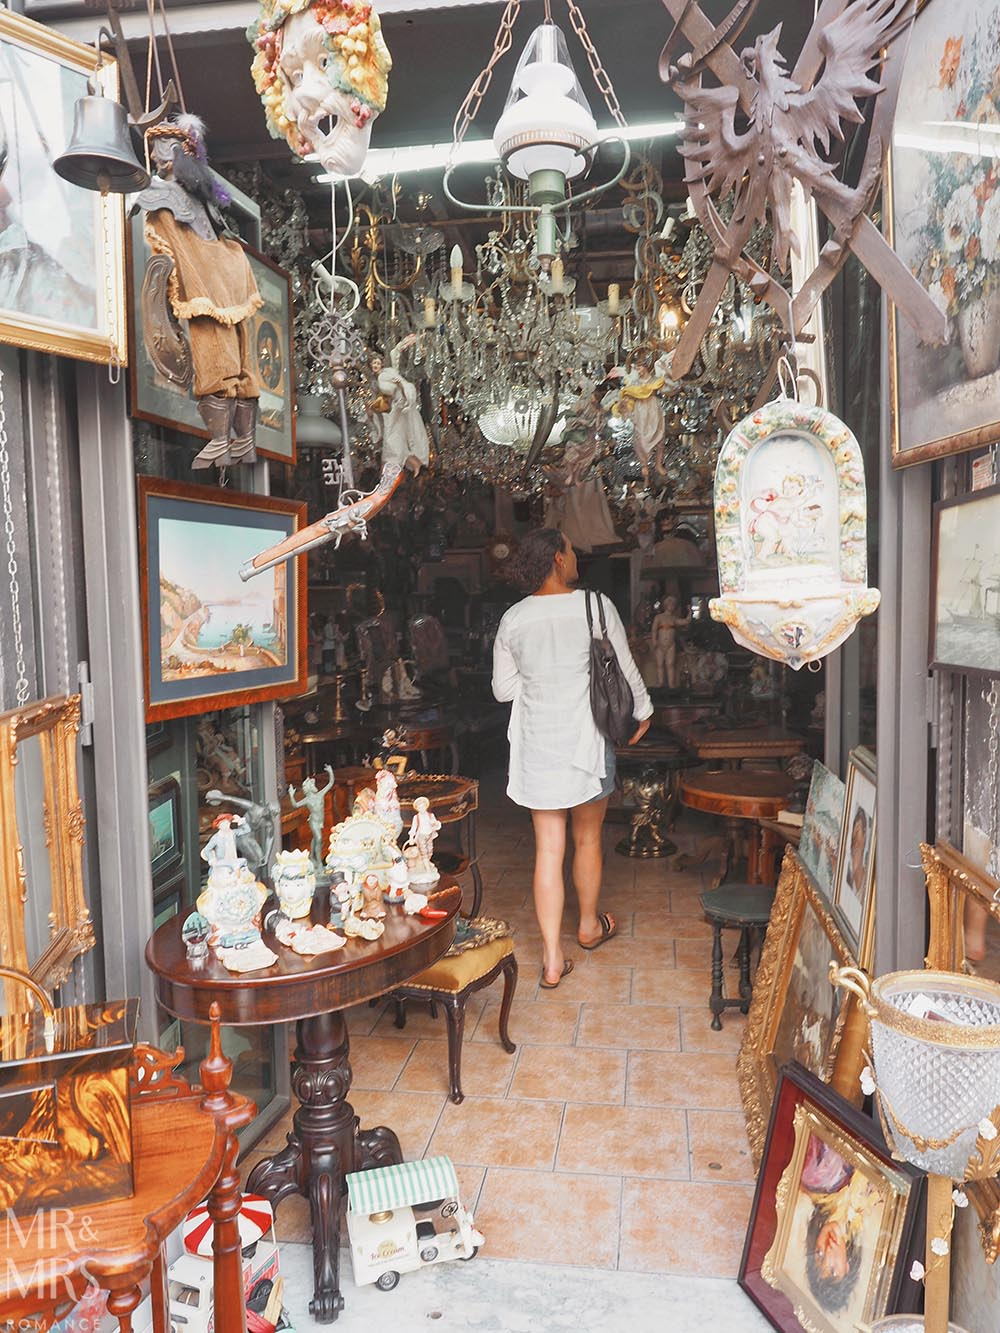 Is Naples safe? Exploring antiques stores in Naples Italy